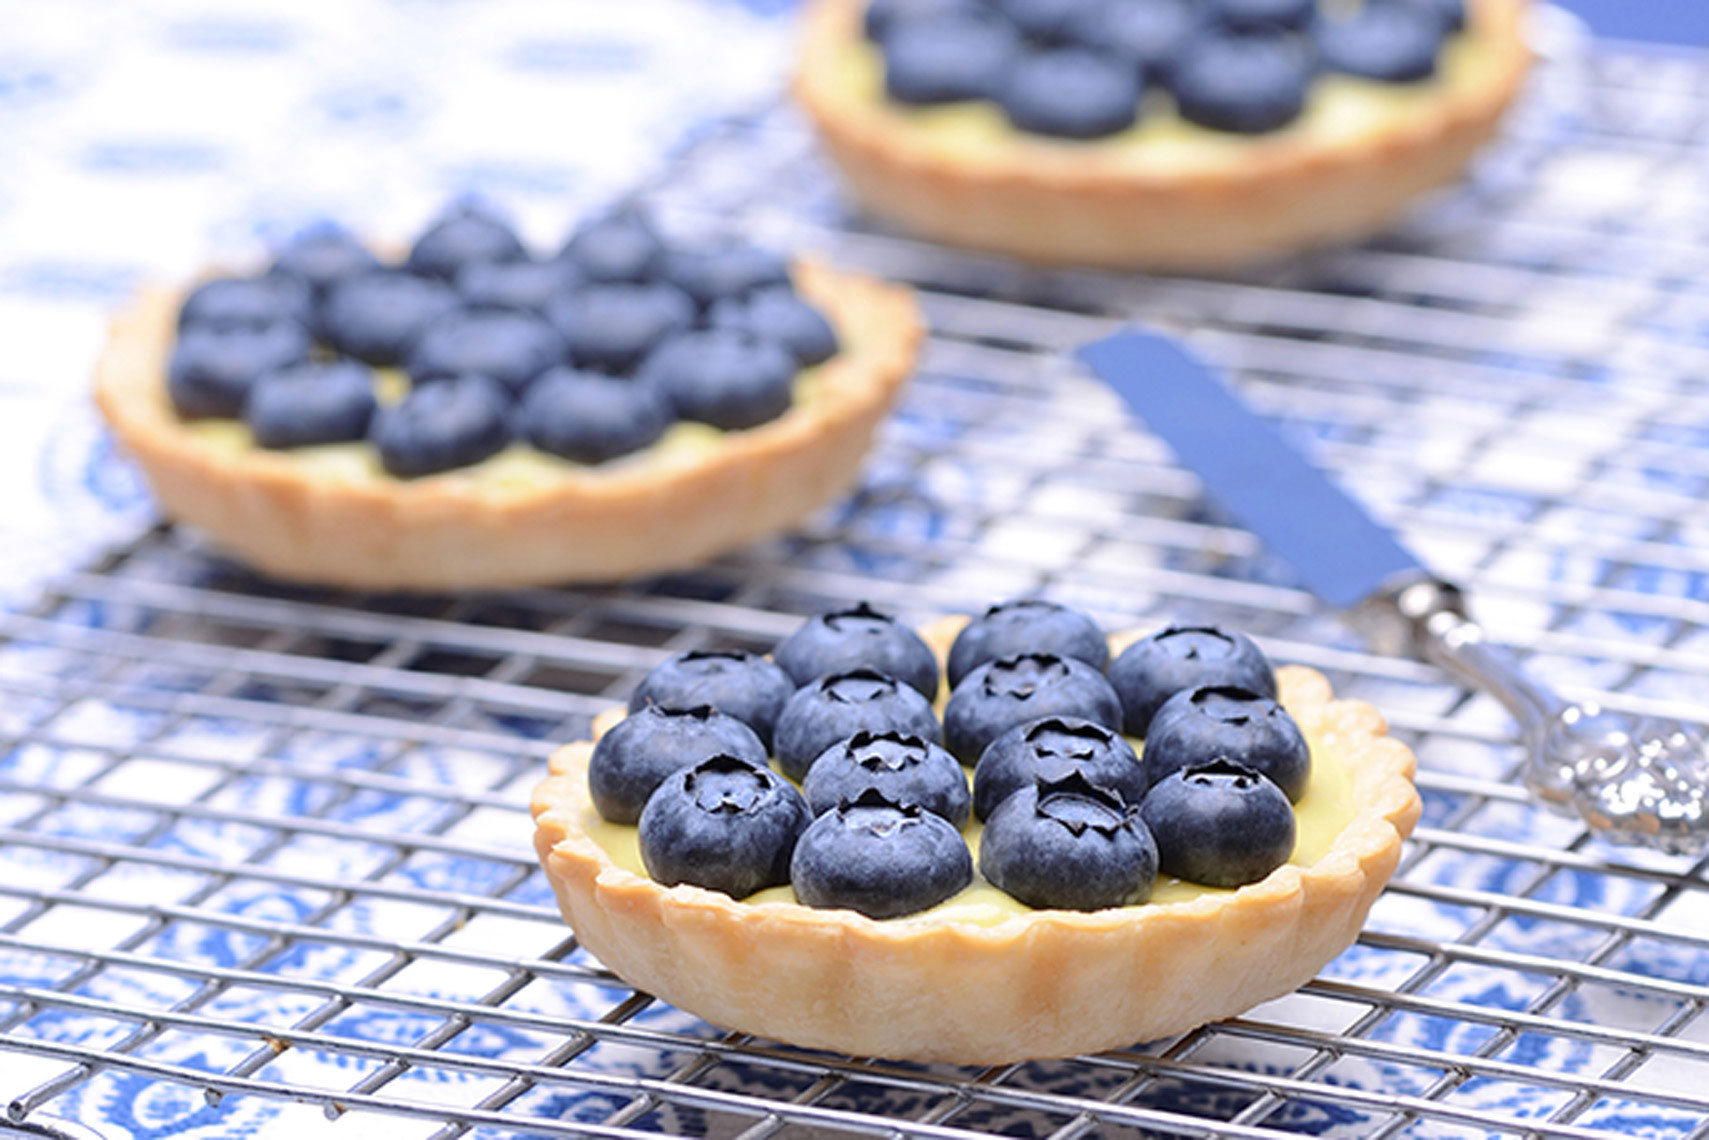 Blueberry-tart-recipe-photography-by-Los-Angeles-food-photographer-Joe-Atlas.